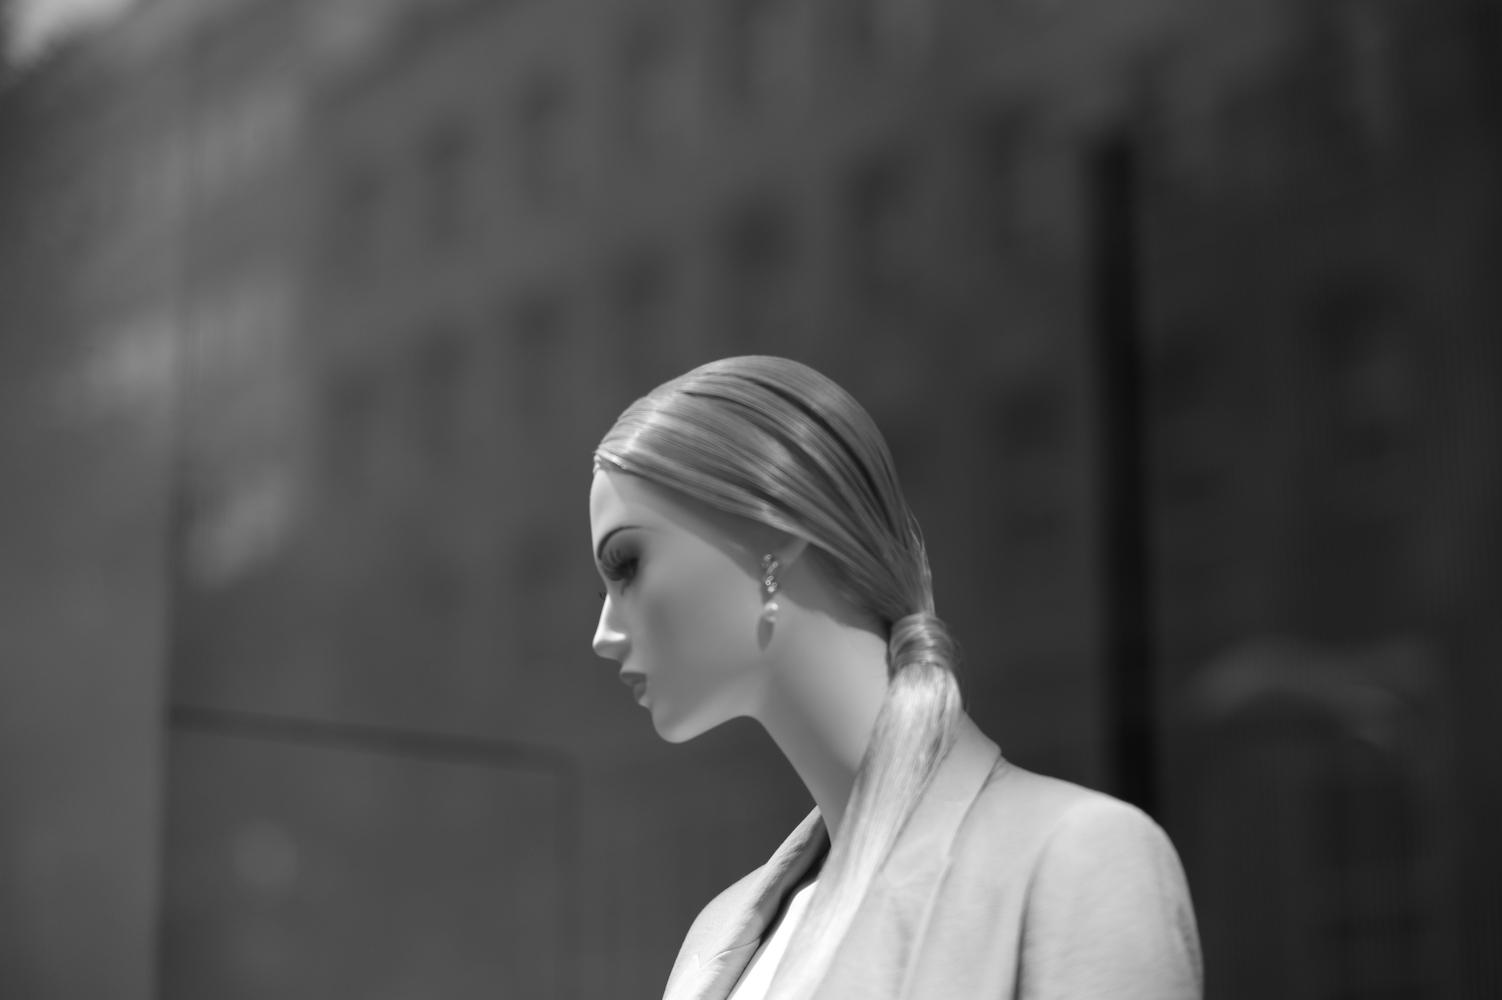 Website-L1213136-#other #blackandwhite #mannequin #hansmartindoelz